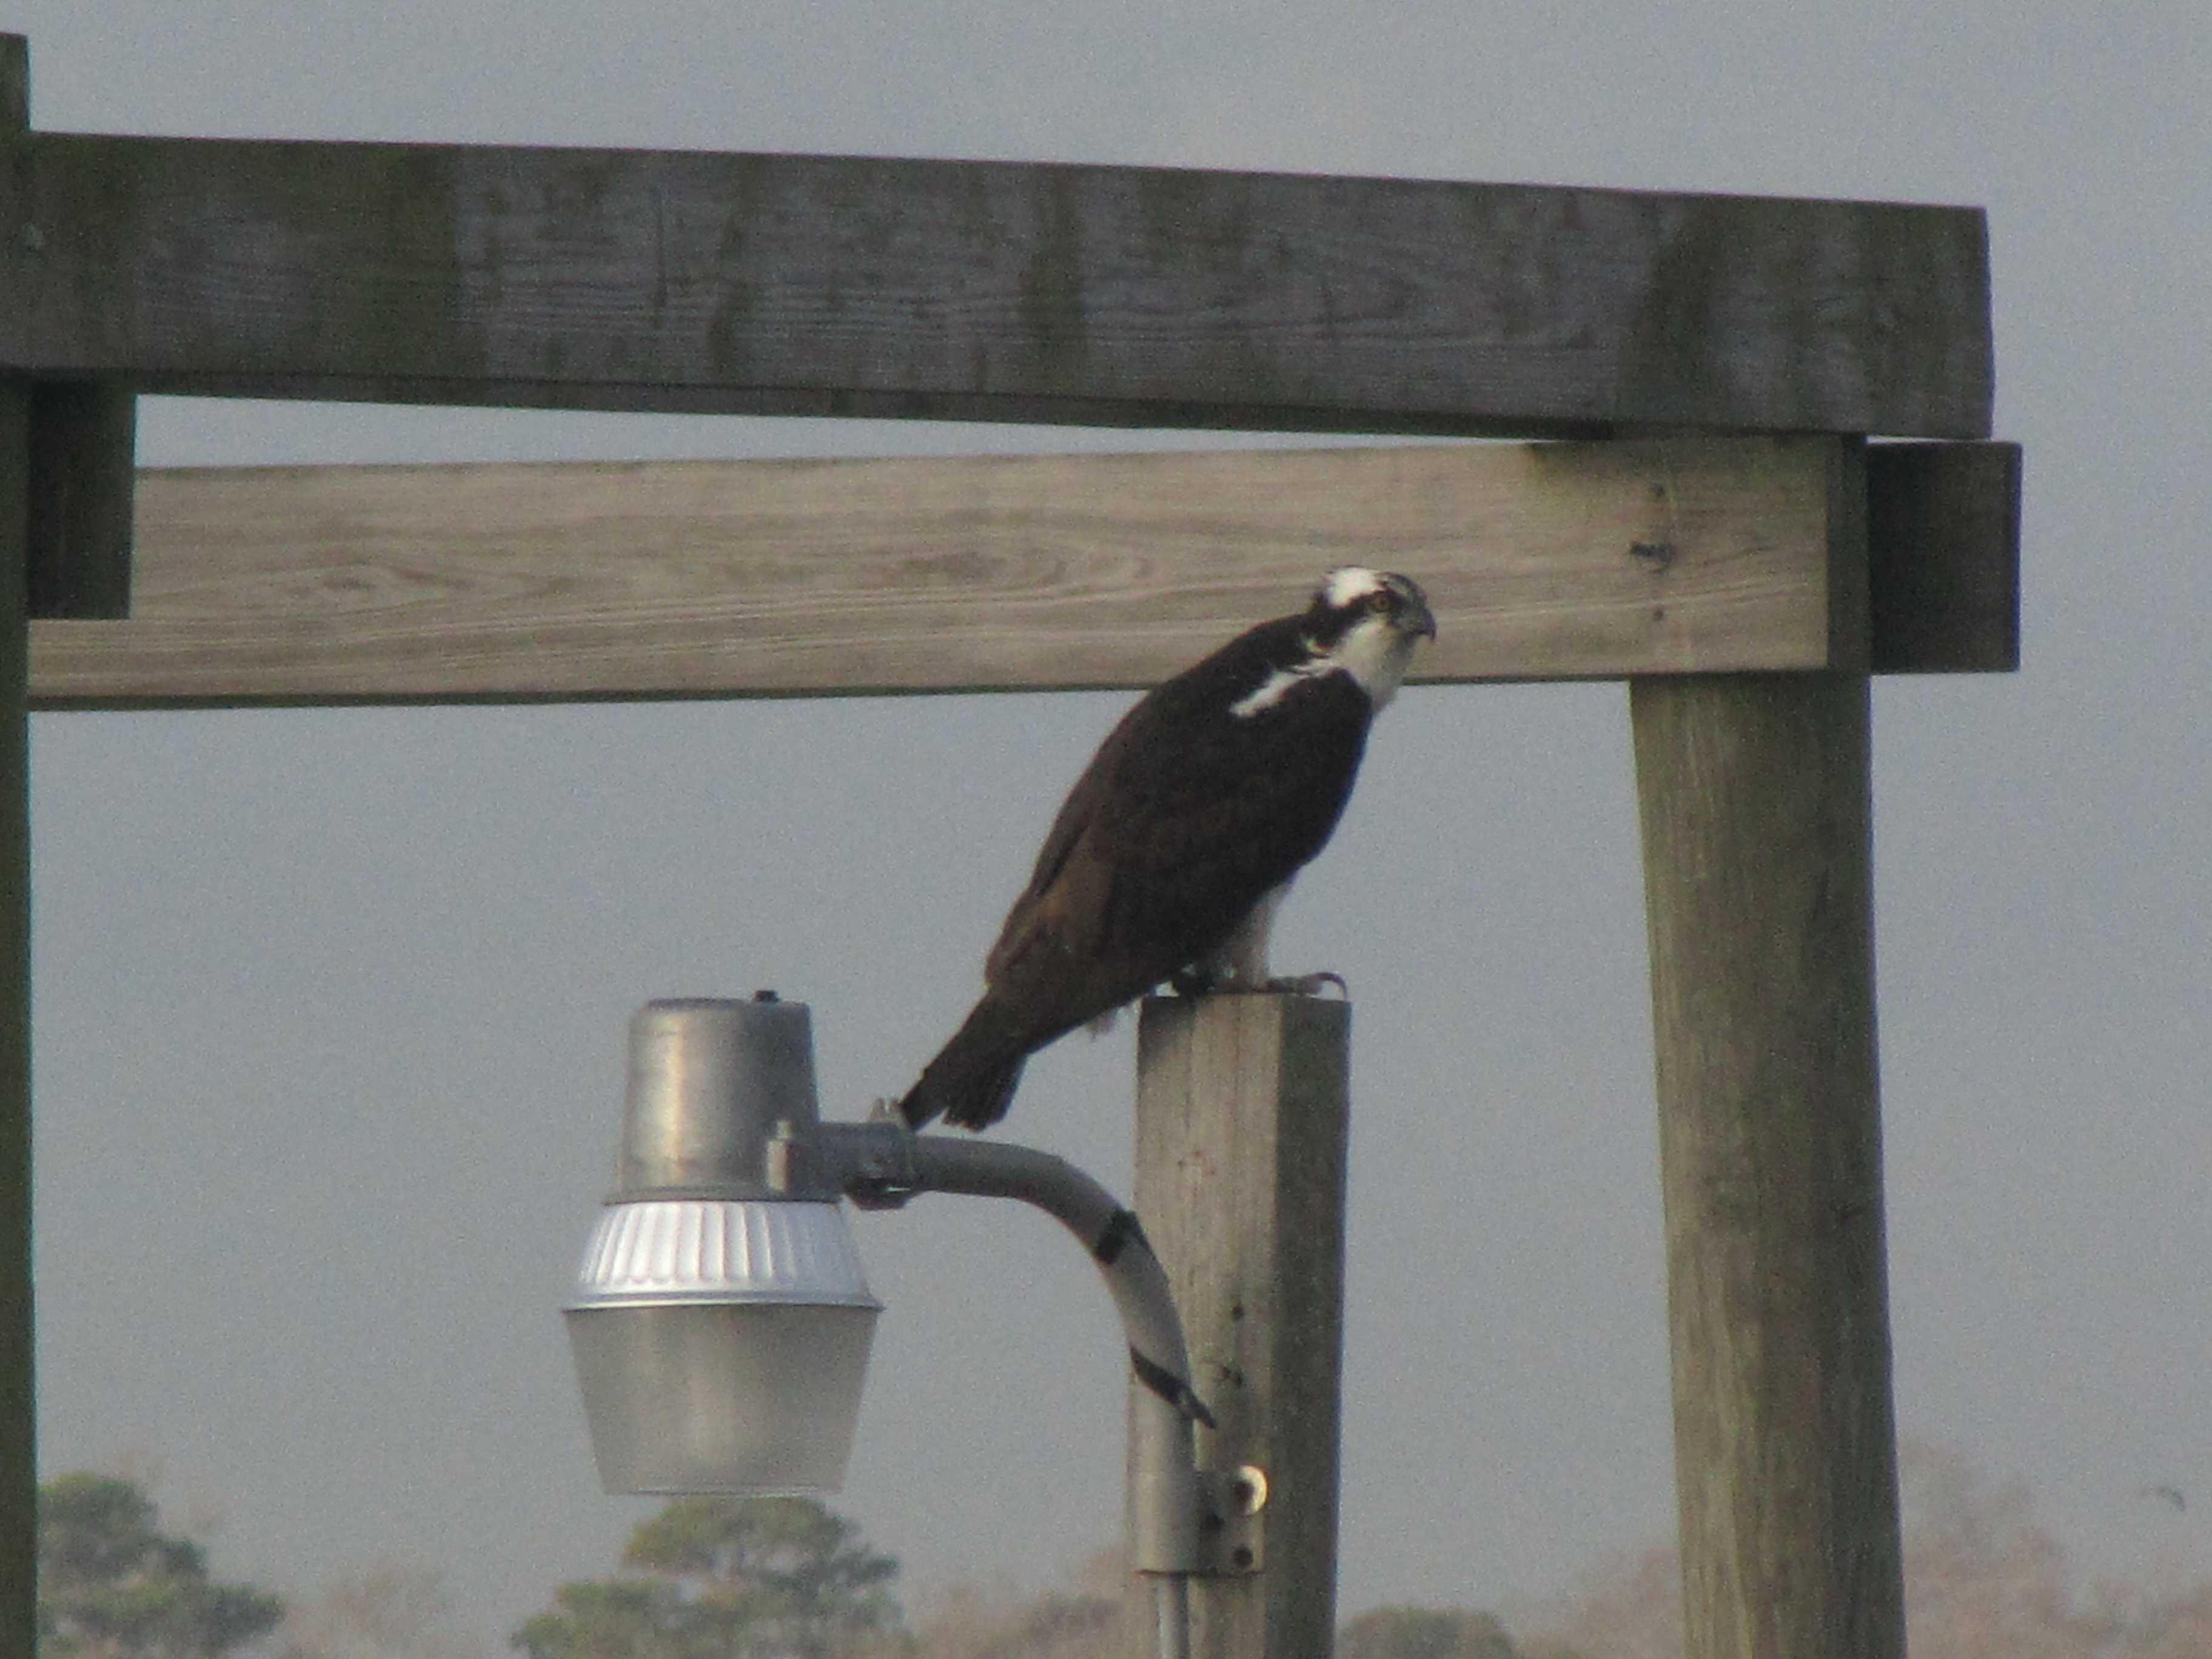 An osprey in our backyard